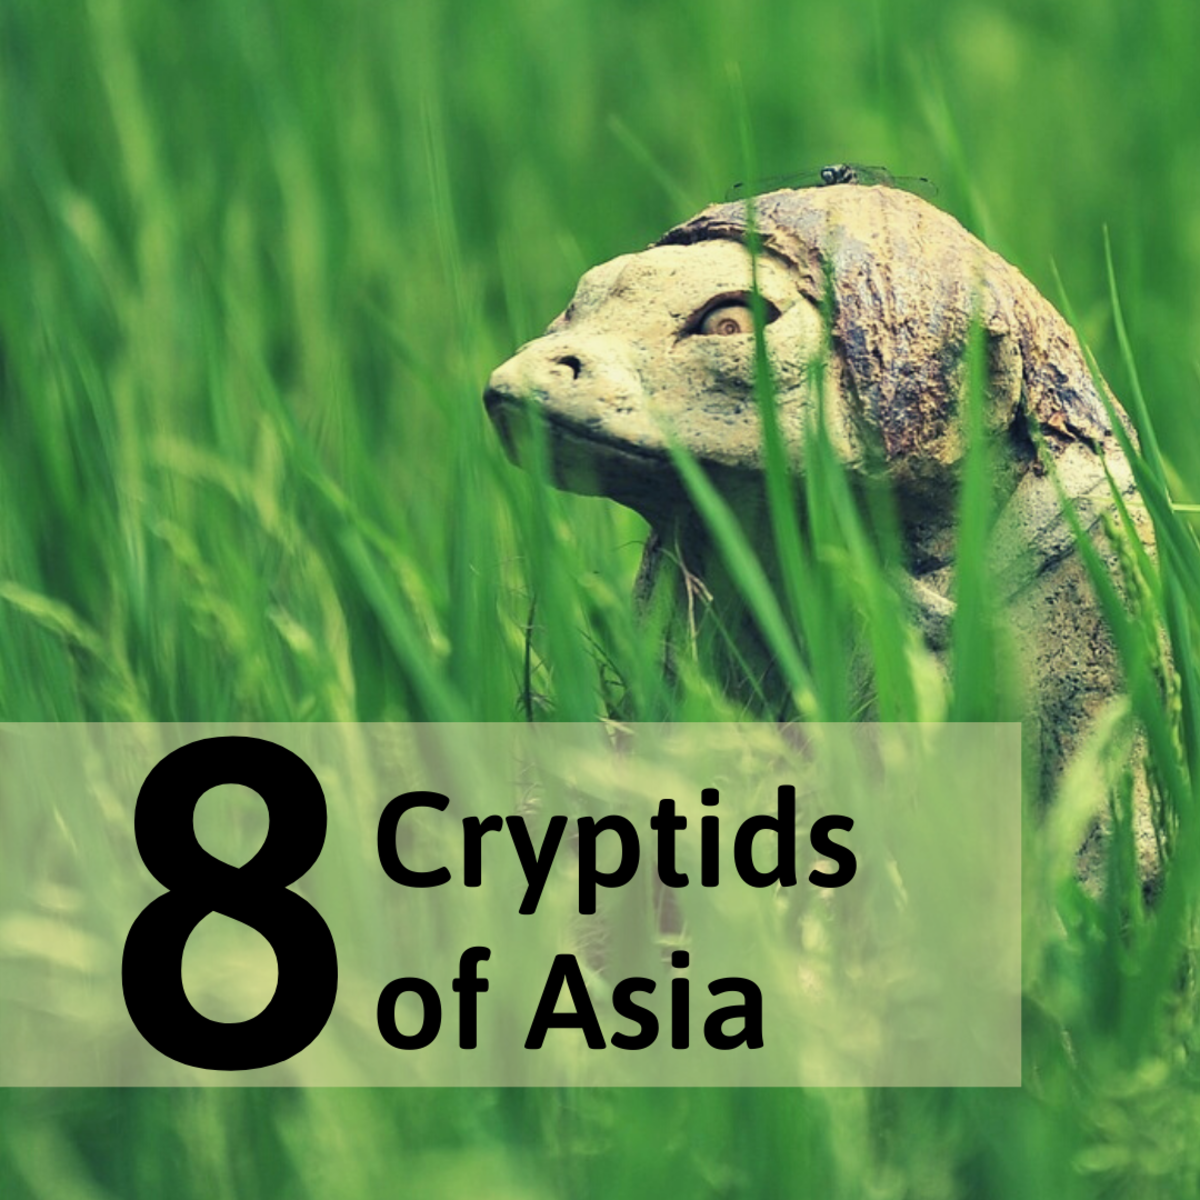 Discover some legendary creatures of Asia, such as the Kappa that this sculpture is based on.